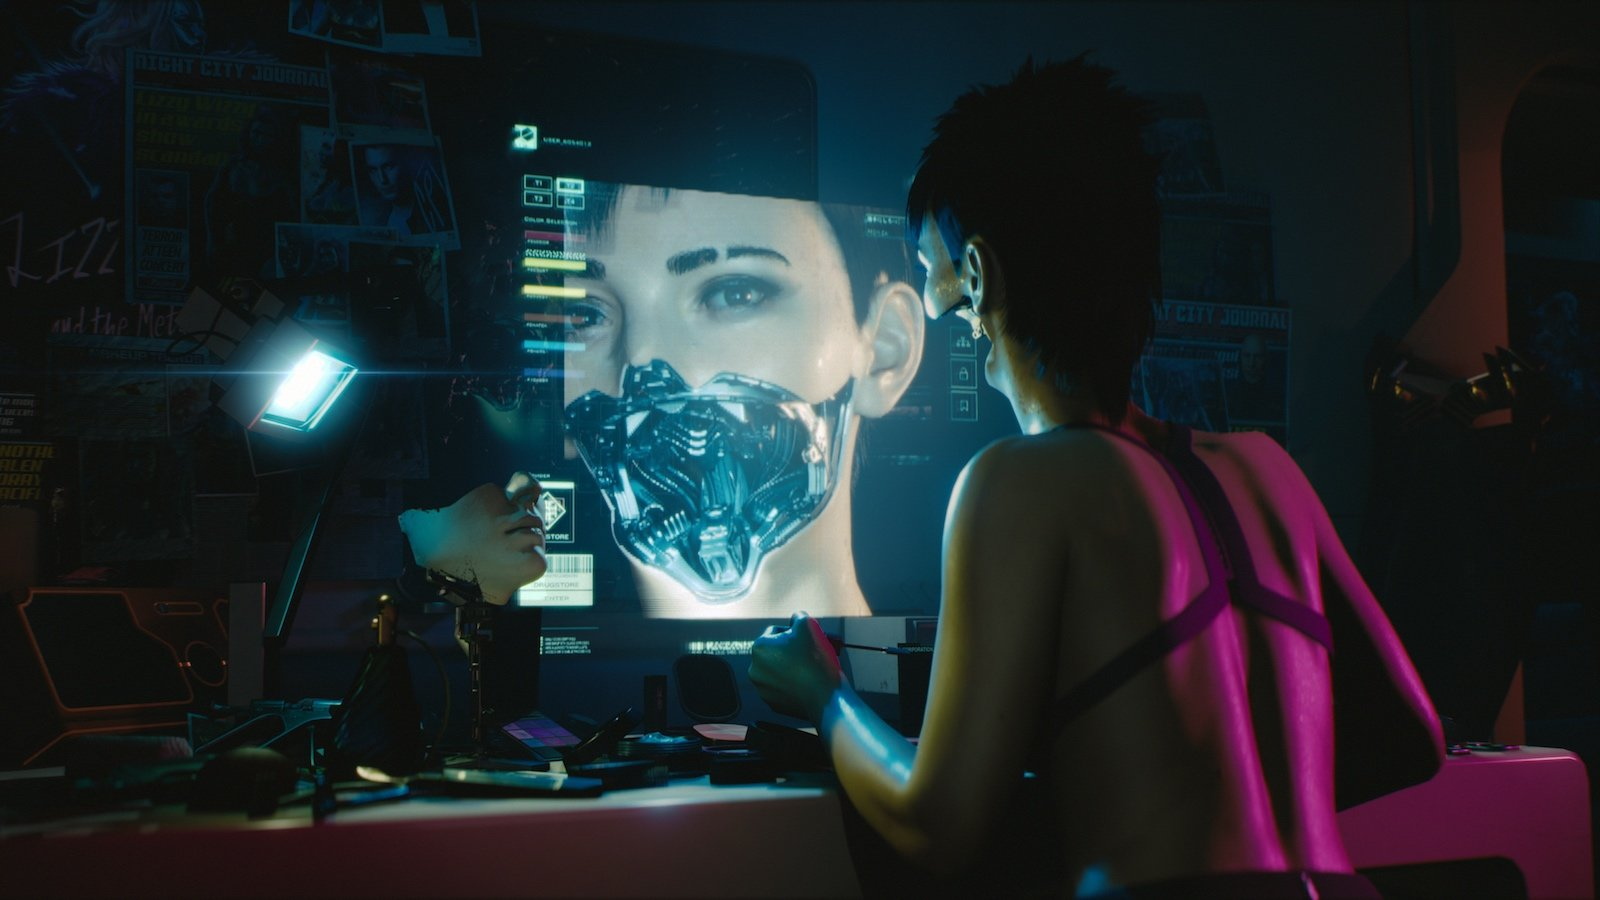 Cyberpunk 2077 and 2020 tabletop confirmed as being in the ...